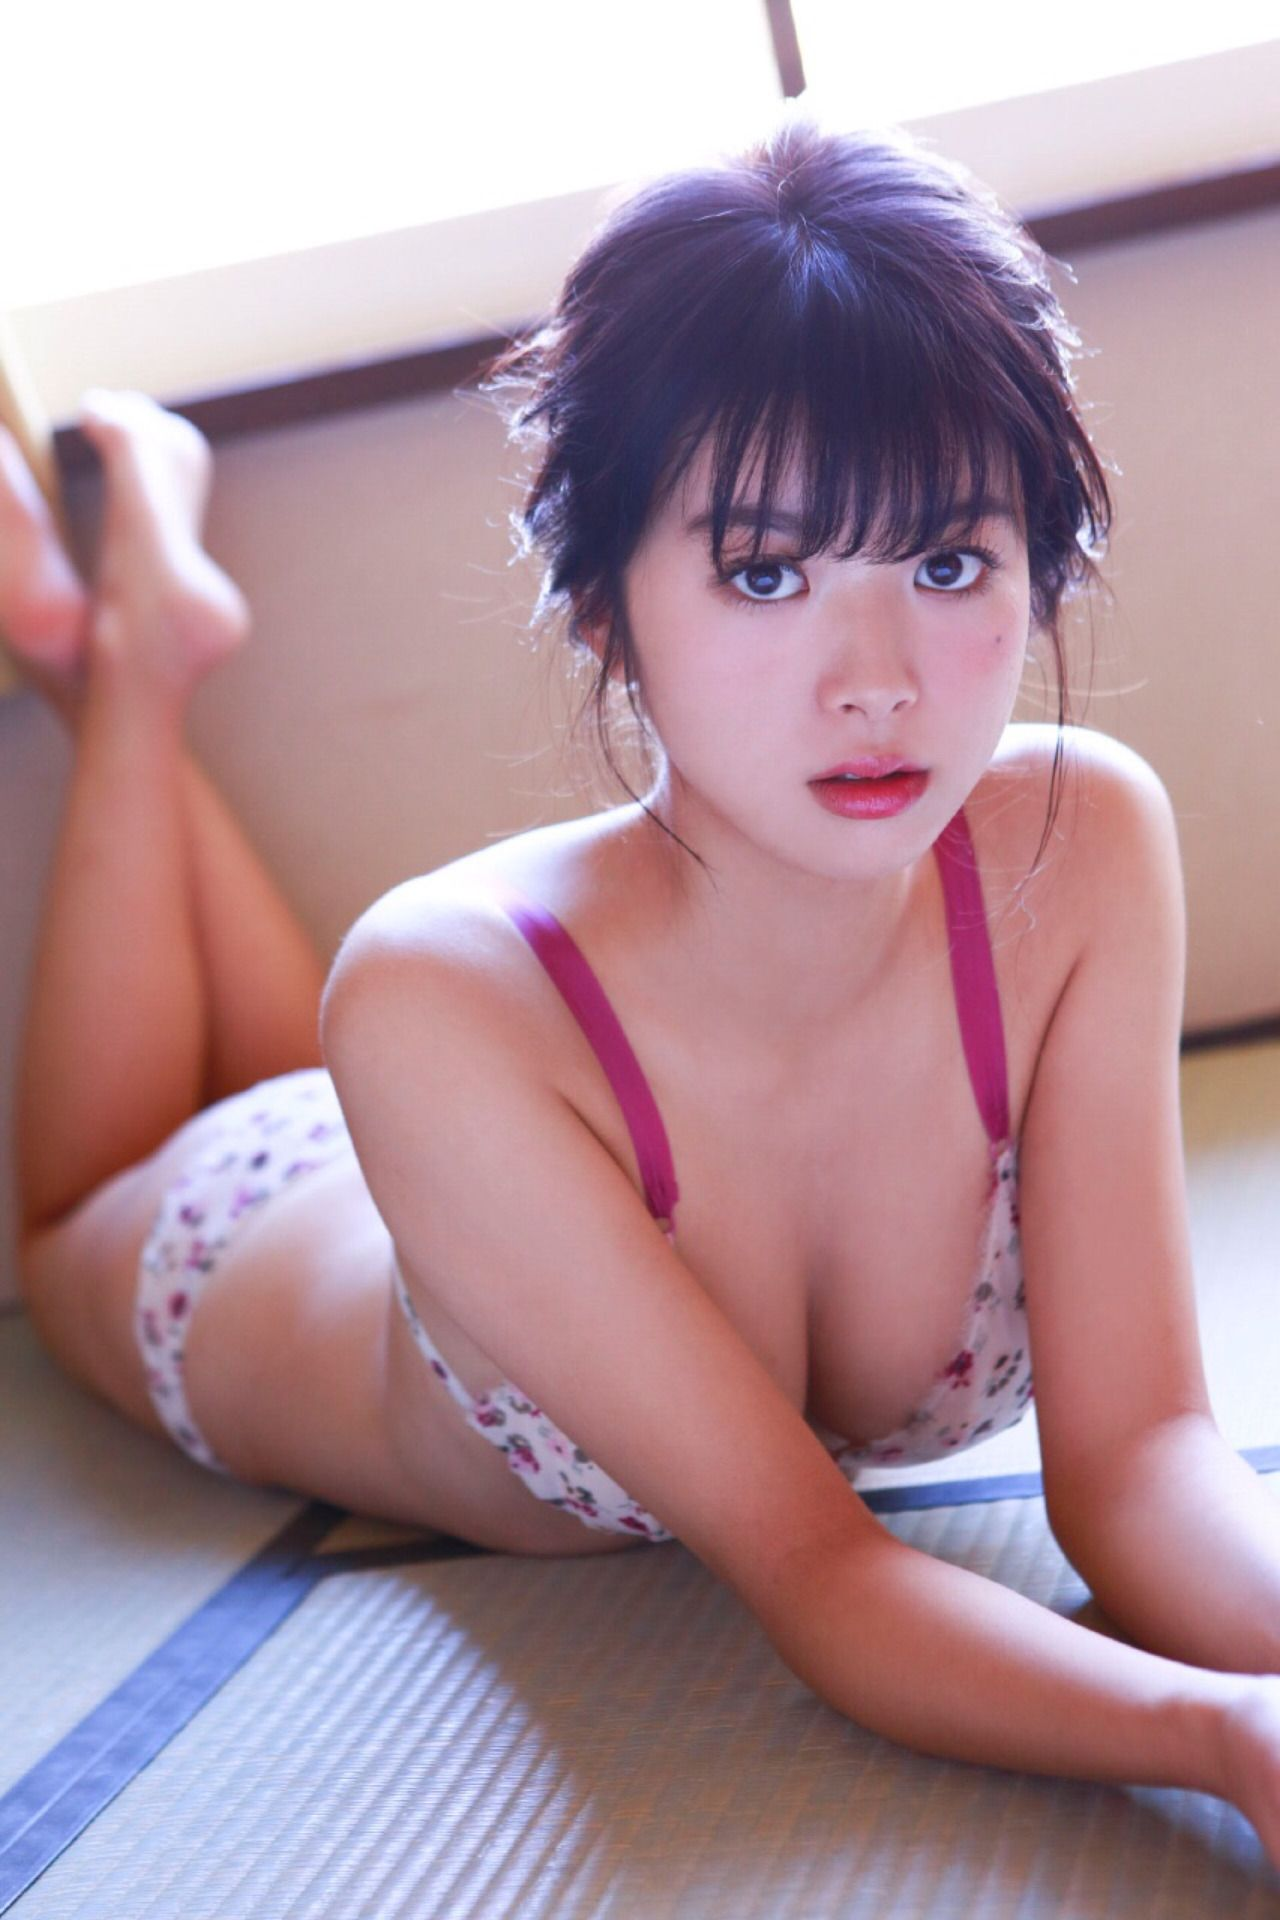 Hot girls from asia dance for you 10